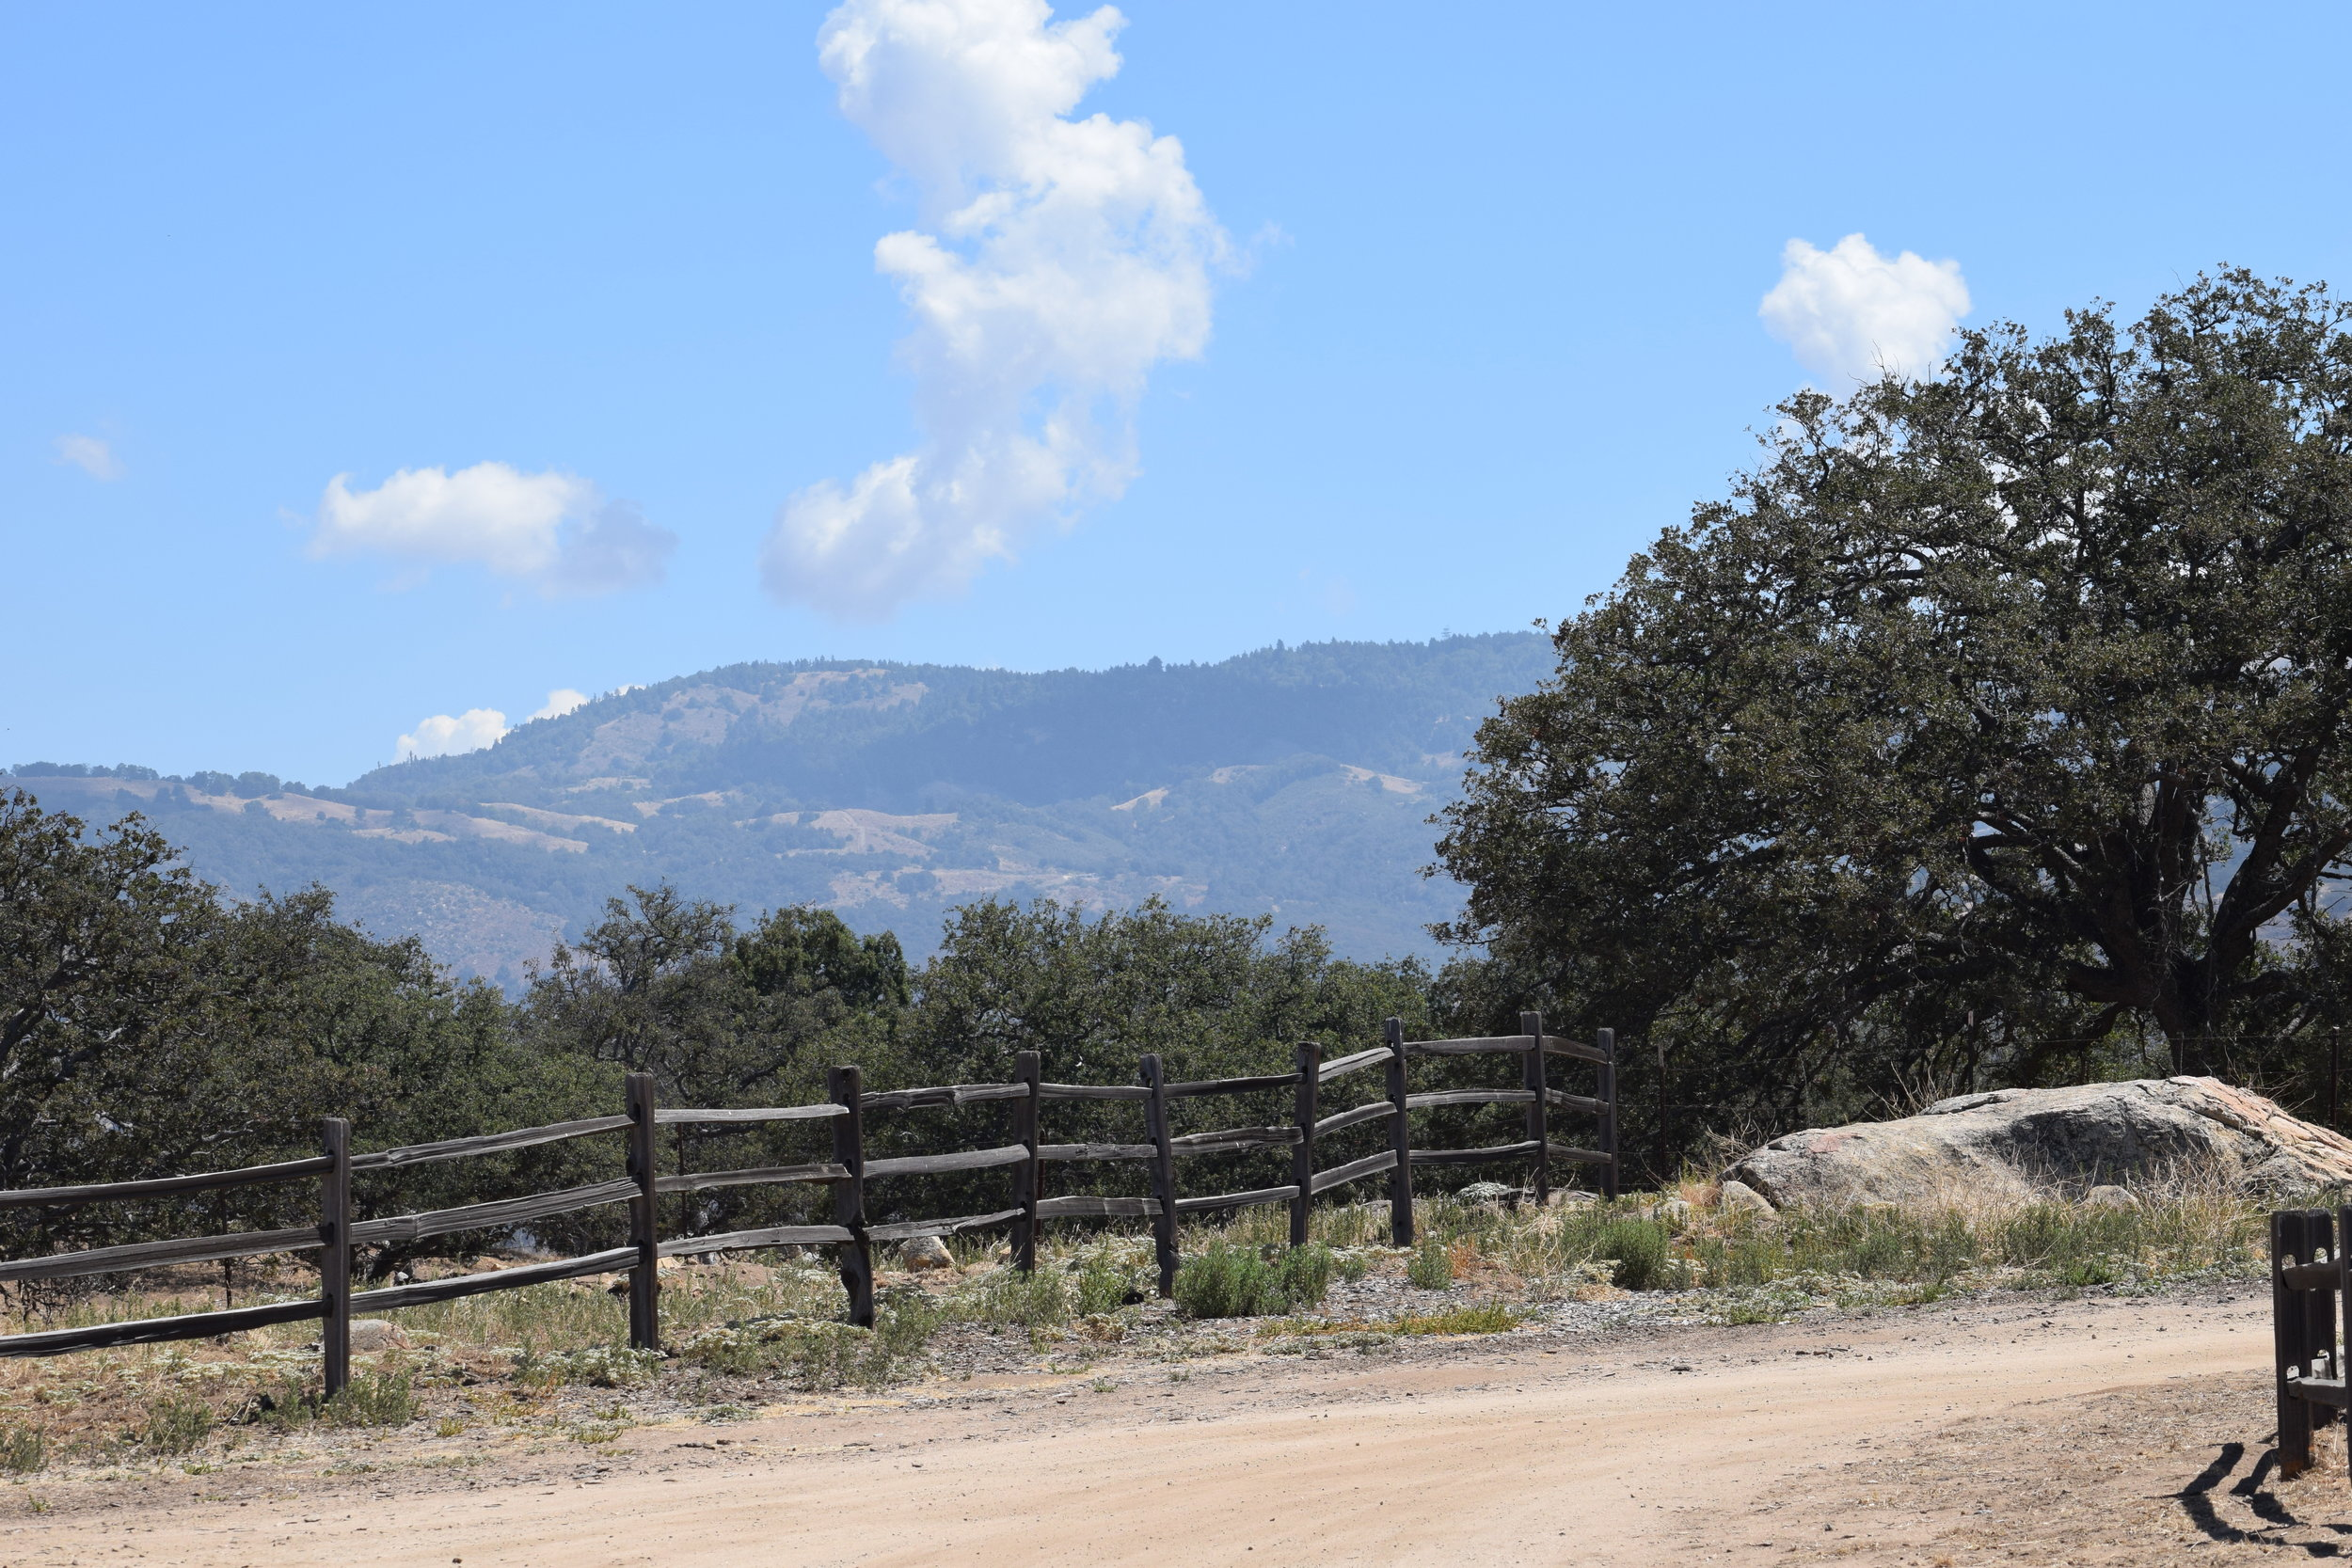 Santa Ysabel - For those who enjoy nature and the outdoors, check out the area's hiking trails — including the popular Santa Ysabel East and West County Preserves and Inaja Memorial Park, which have miles of trails and fabulous wildlife viewing opportunities.